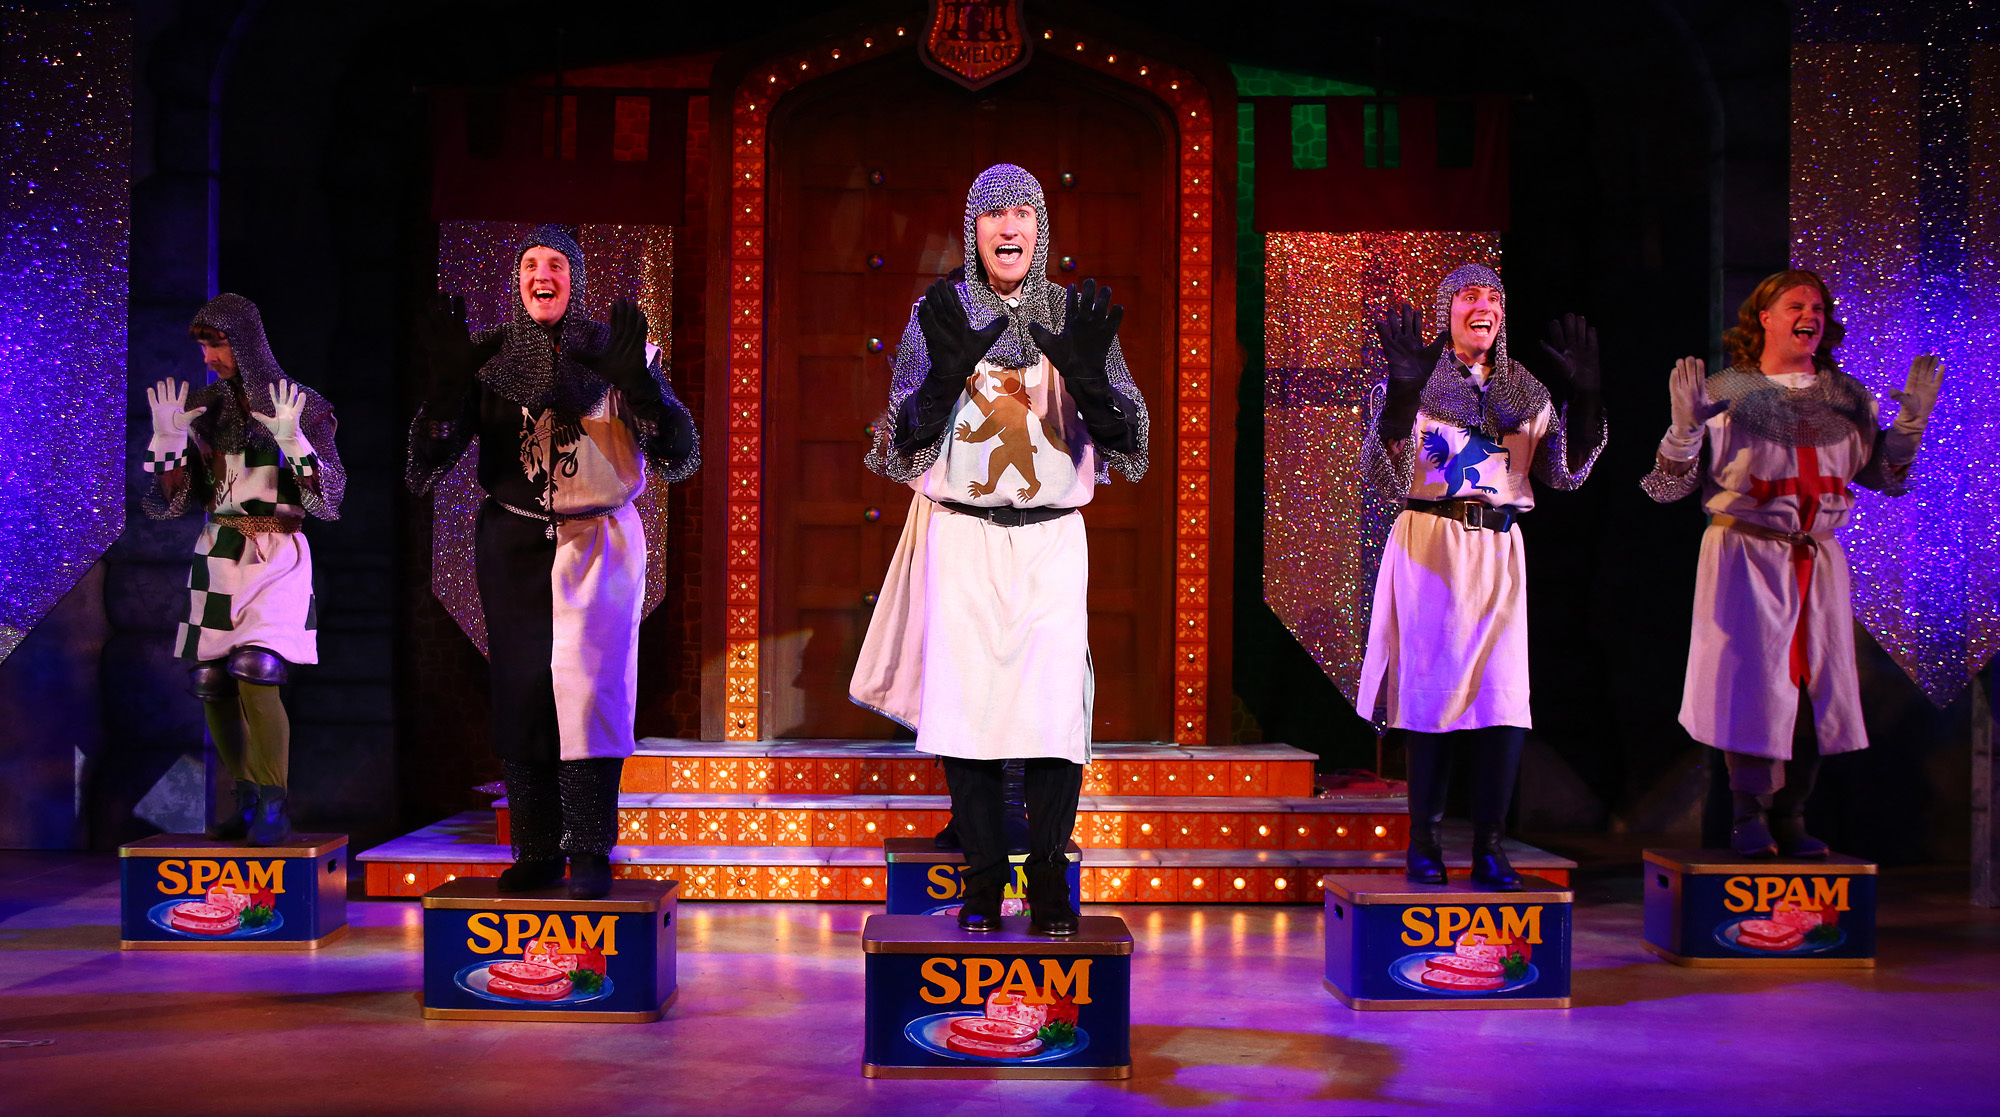 Selladoor Productions Present Monty Pythons U0027Spamalotu0027 With Its Dancing  Knights Of The Round Table